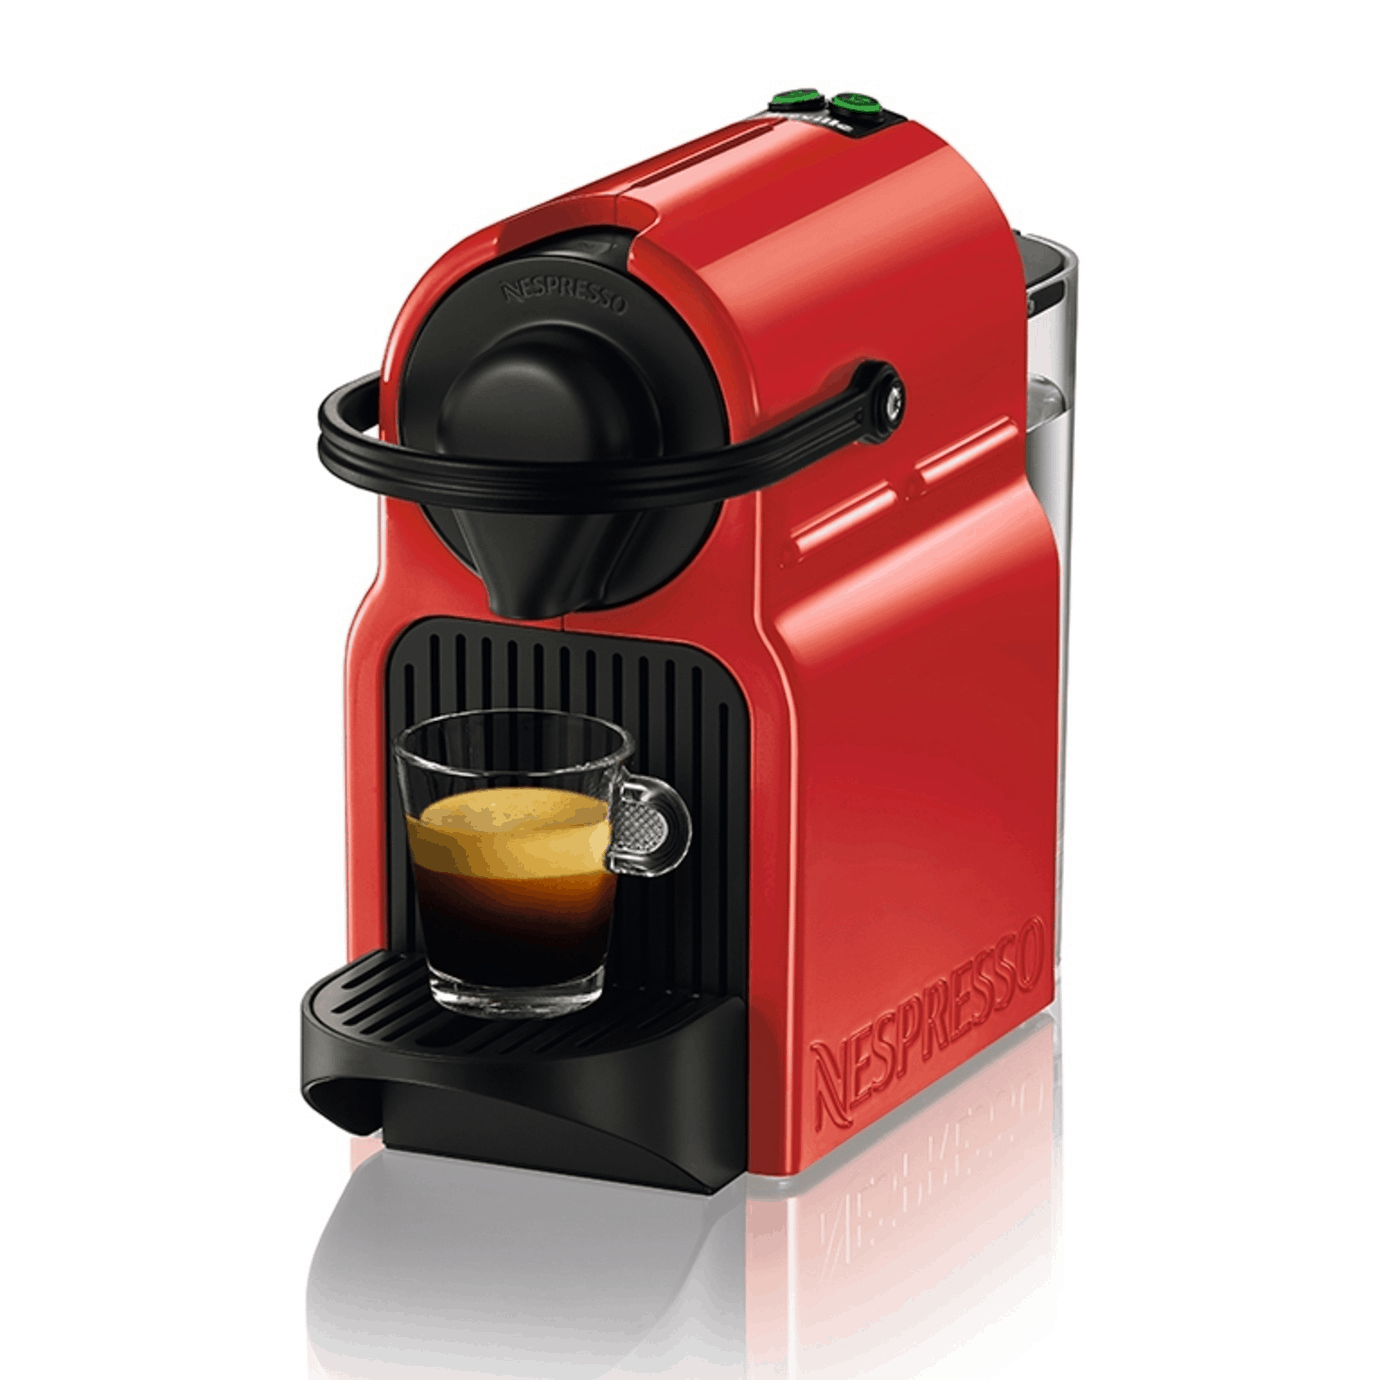 The Best Espresso Machines In Singapore is Nespresso Inissia Coffee Machine.